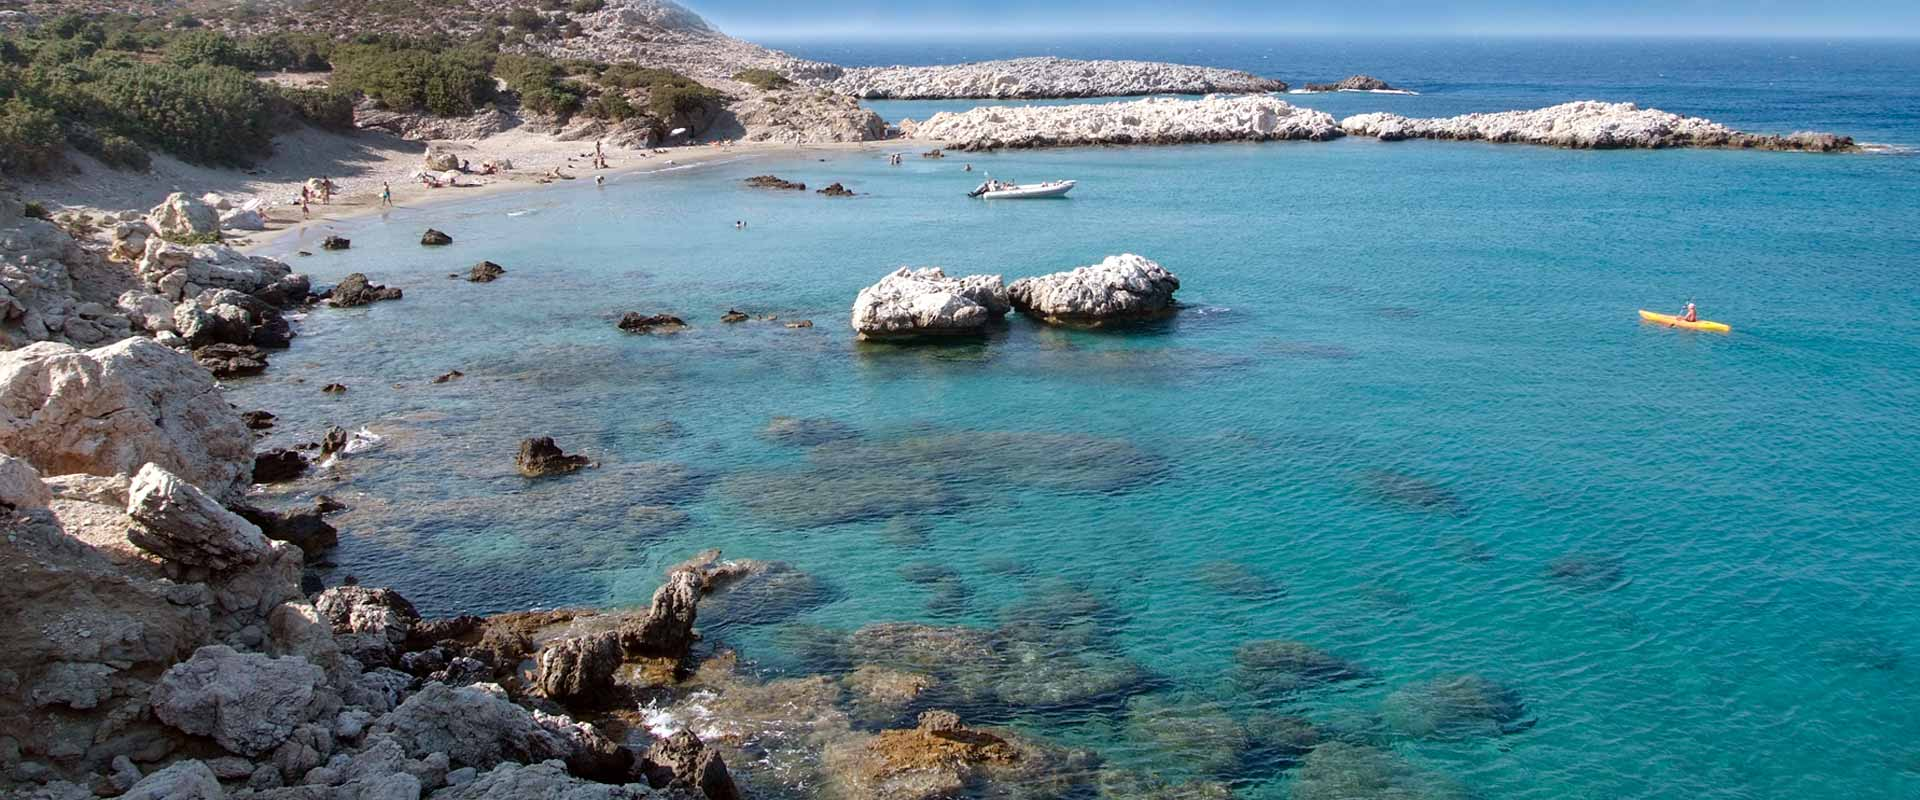 ikaria olivia villas saint george beach photo